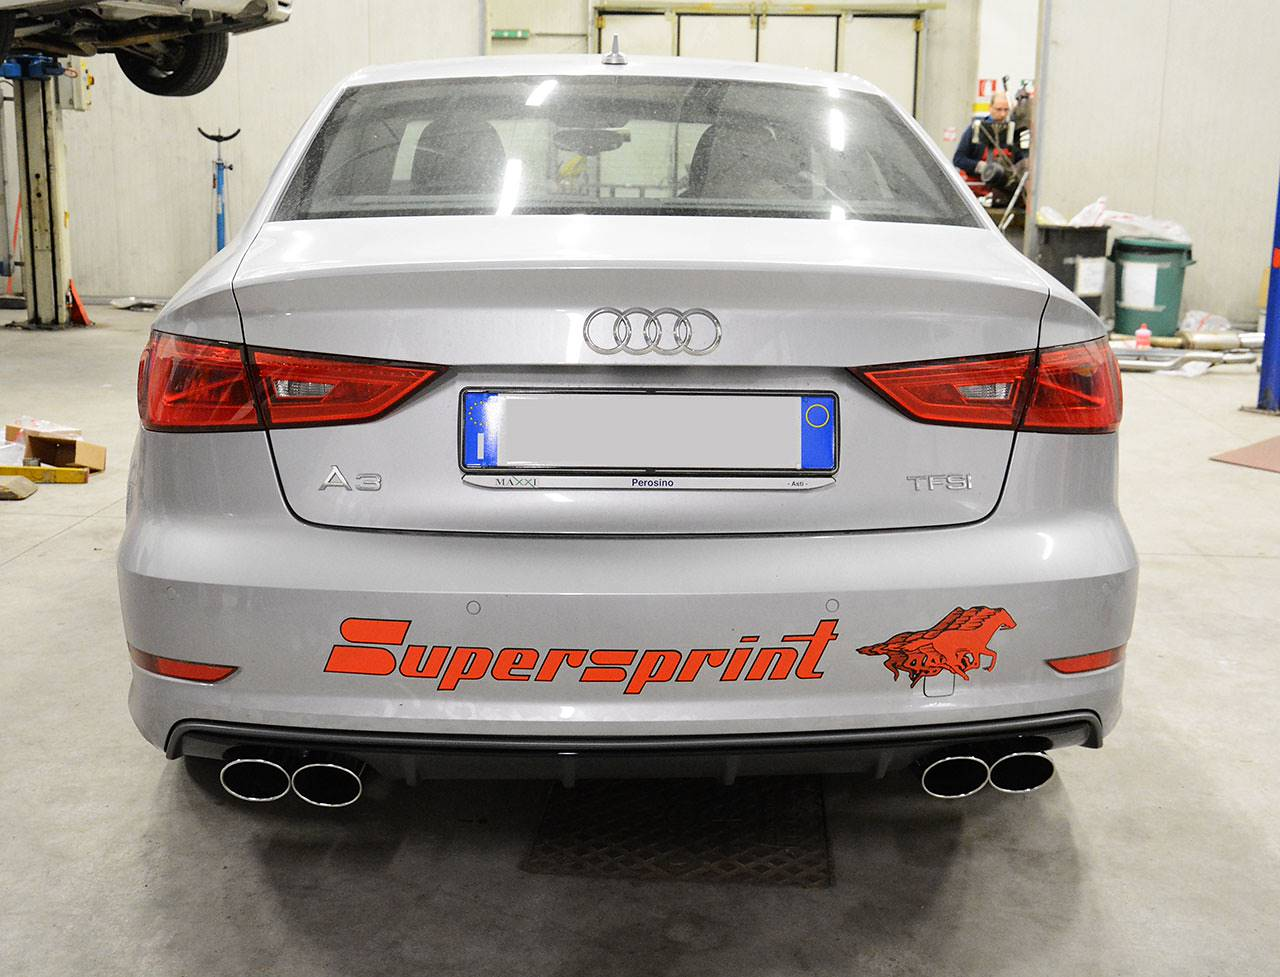 Supersprint sport exhaust 4 outputs composed by tailpipes 765927, rear muffler 772954, centre exhaust 772913 and turbo downpipe with cat 100 CPSi 772821 for AUDI A3 8V Sedan 1.8 TFSI